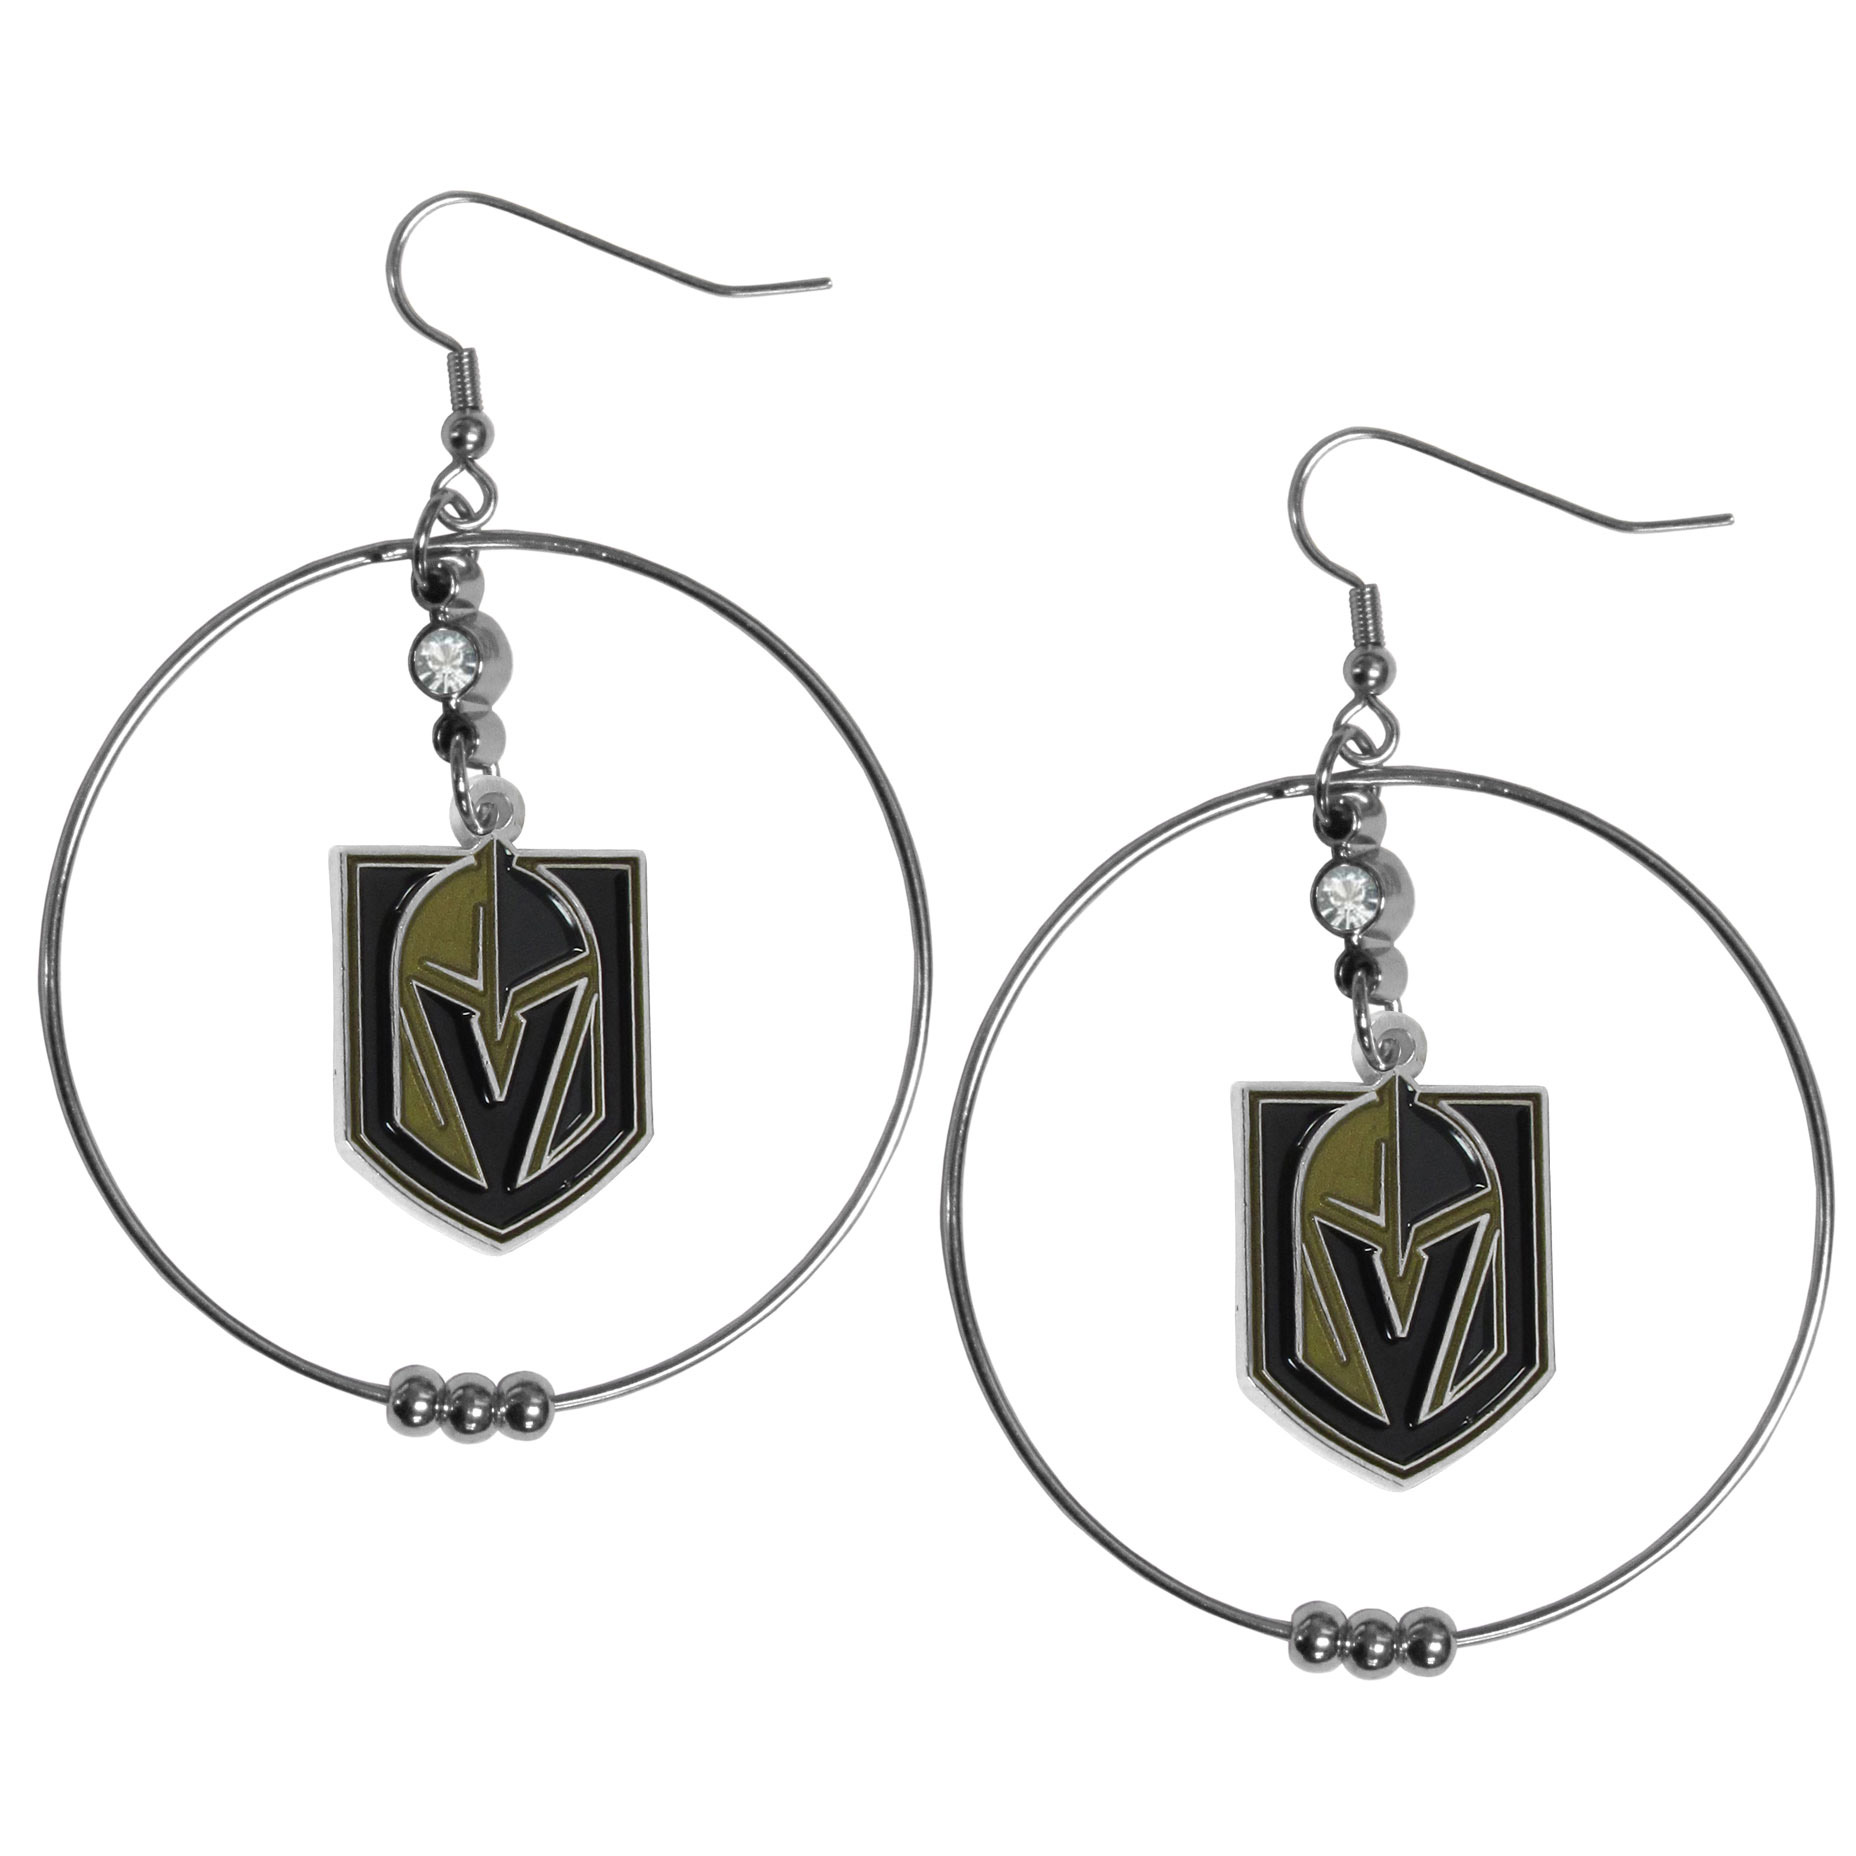 Las Vegas Golden Knights® 2 Inch Hoop Earrings - Our large hoop earrings have a fully cast and enameled Las Vegas Golden Knights® charm with enameled detail and a high polish nickel free chrome finish and rhinestone access. Hypoallergenic fishhook posts.